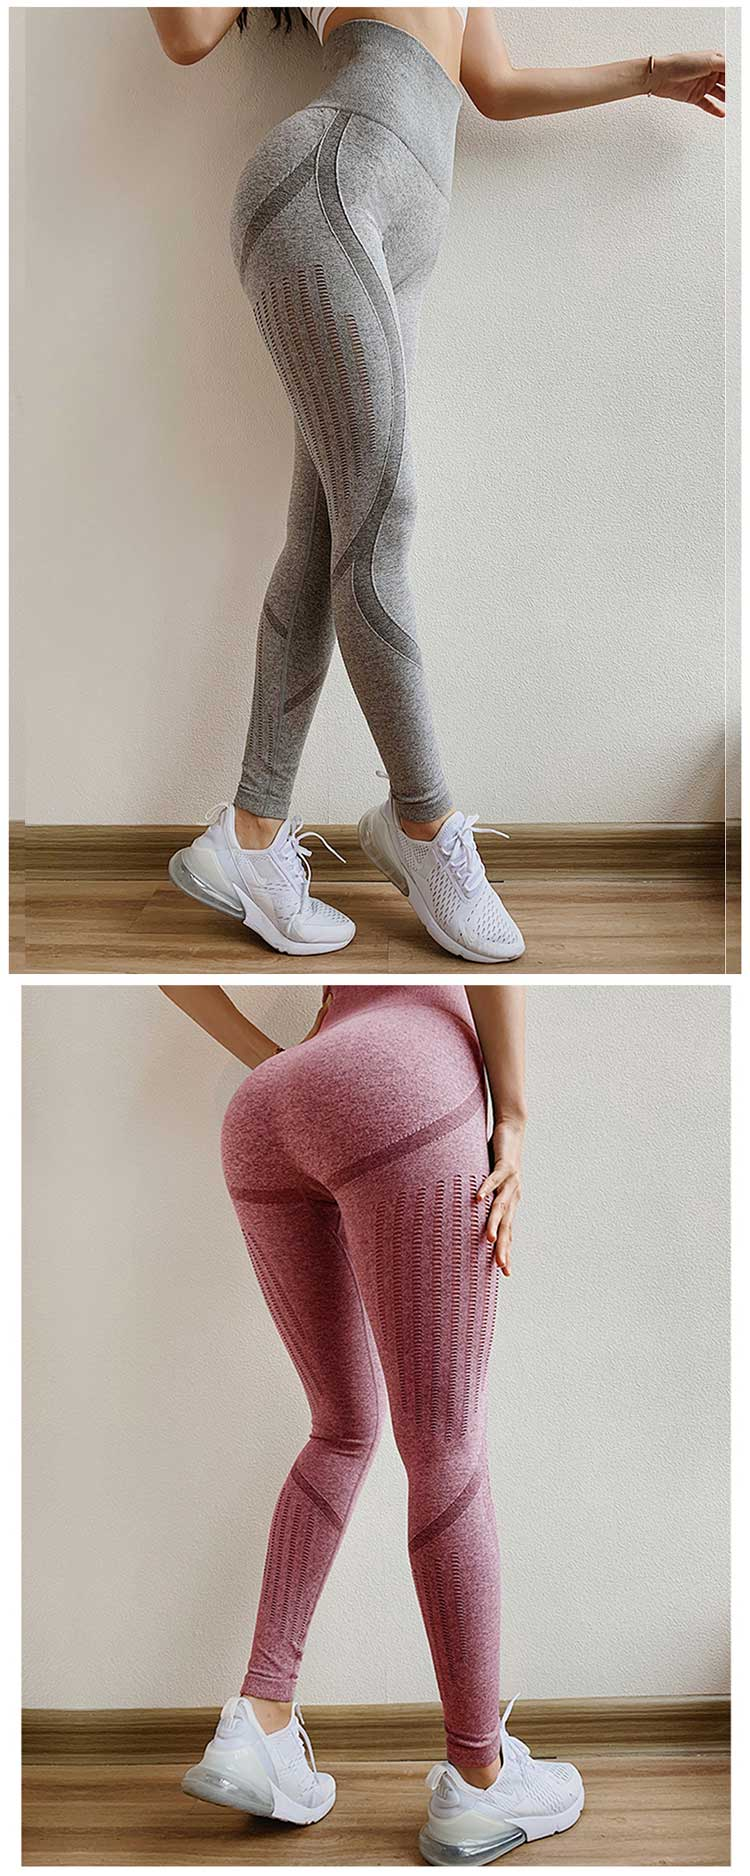 Seamless-yoga-pants-with-hollow-out-design-for-grey-and-red-color